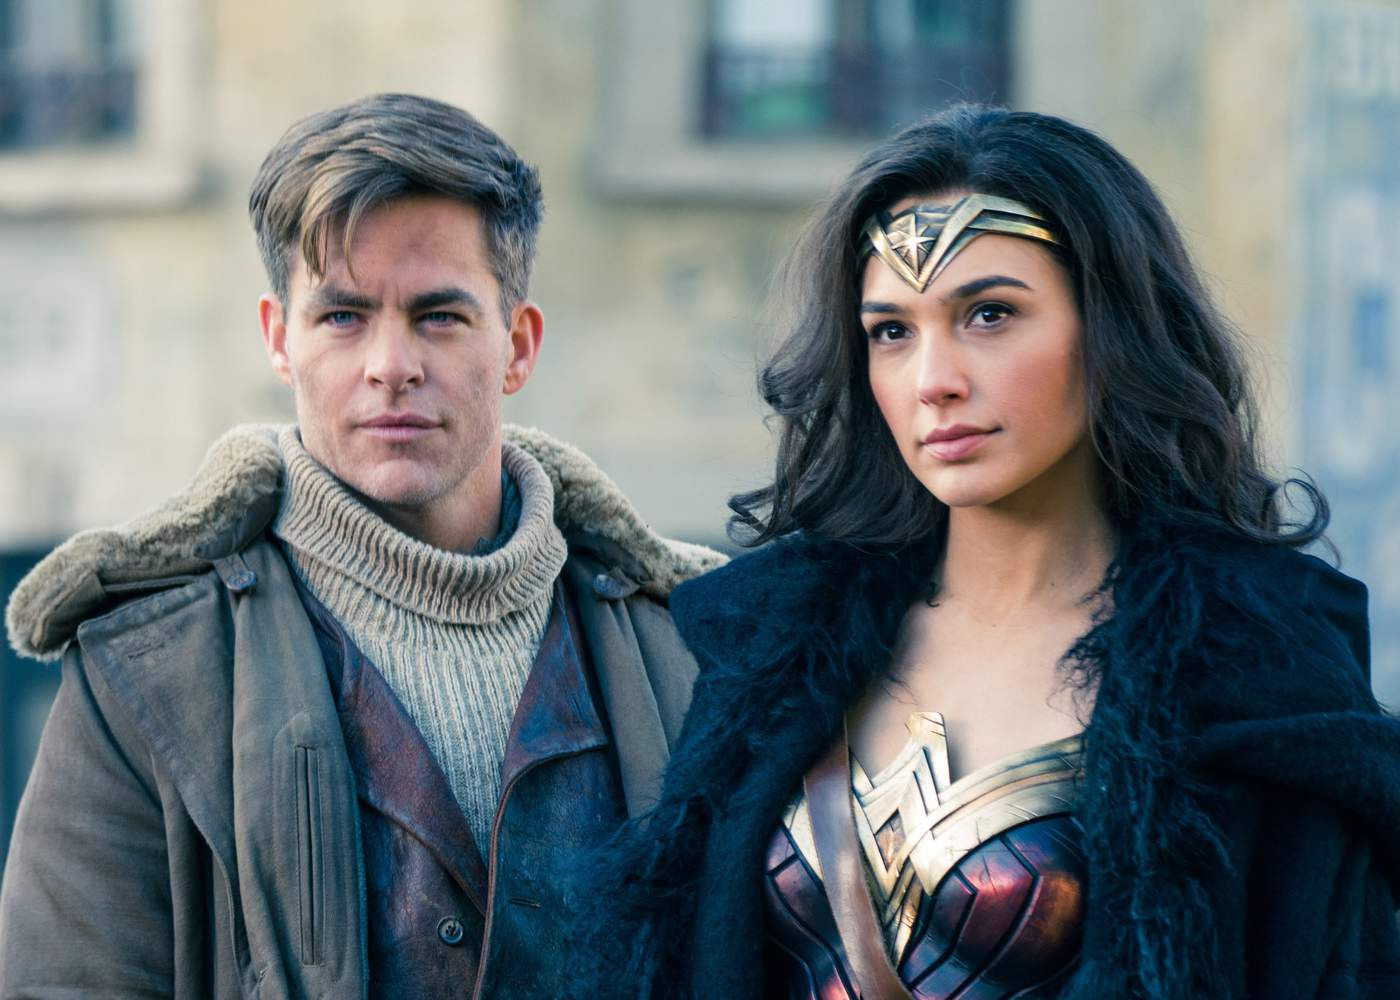 Chris Pine: Wonder Woman 1984 is Steve Trevor's Last Appearance